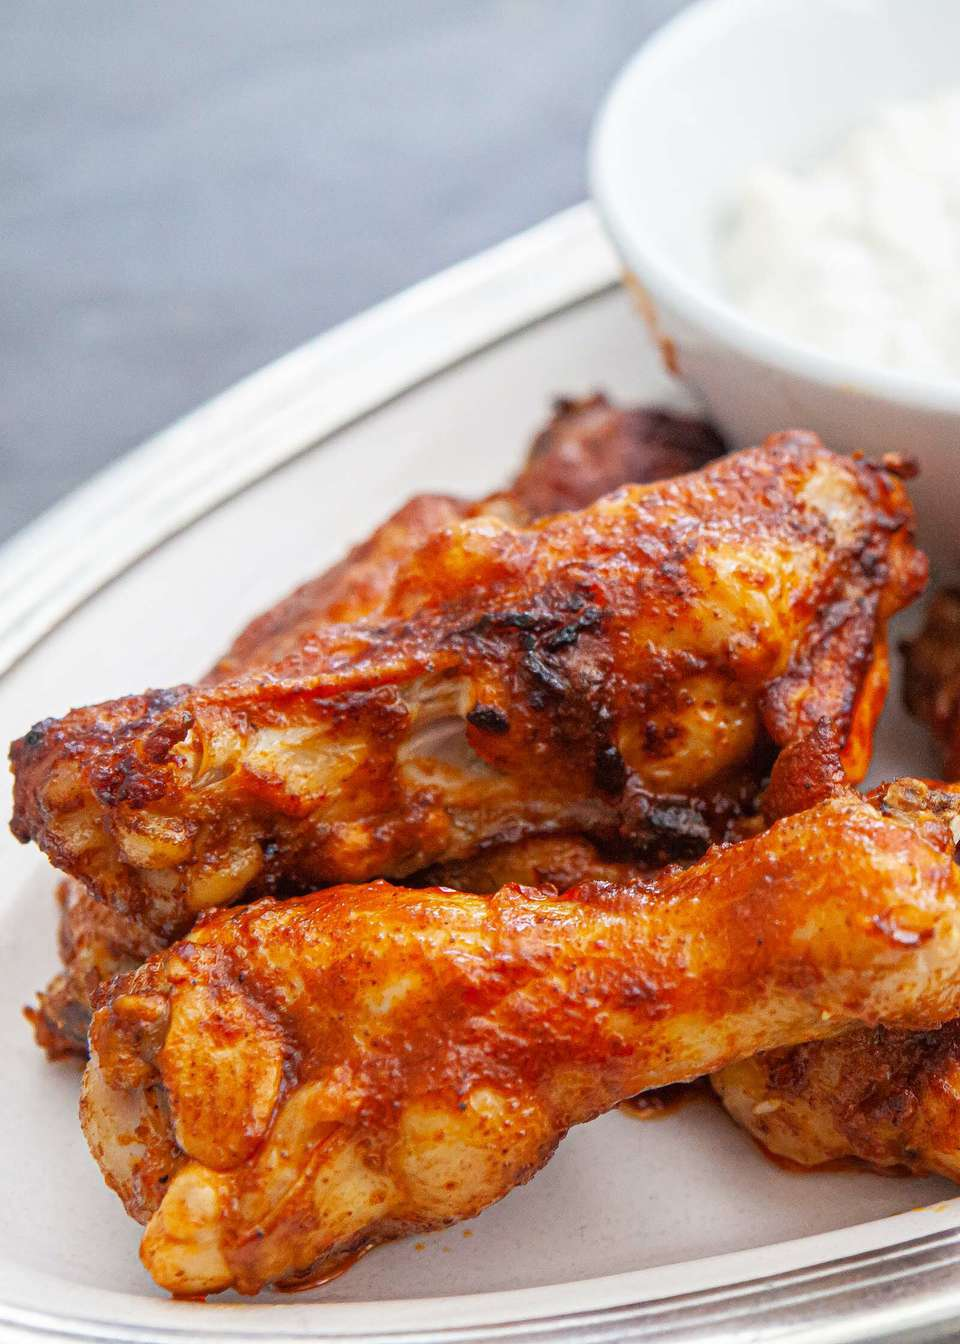 How to make hot wings with buffalo sauce recipe and blue cheese dressing.